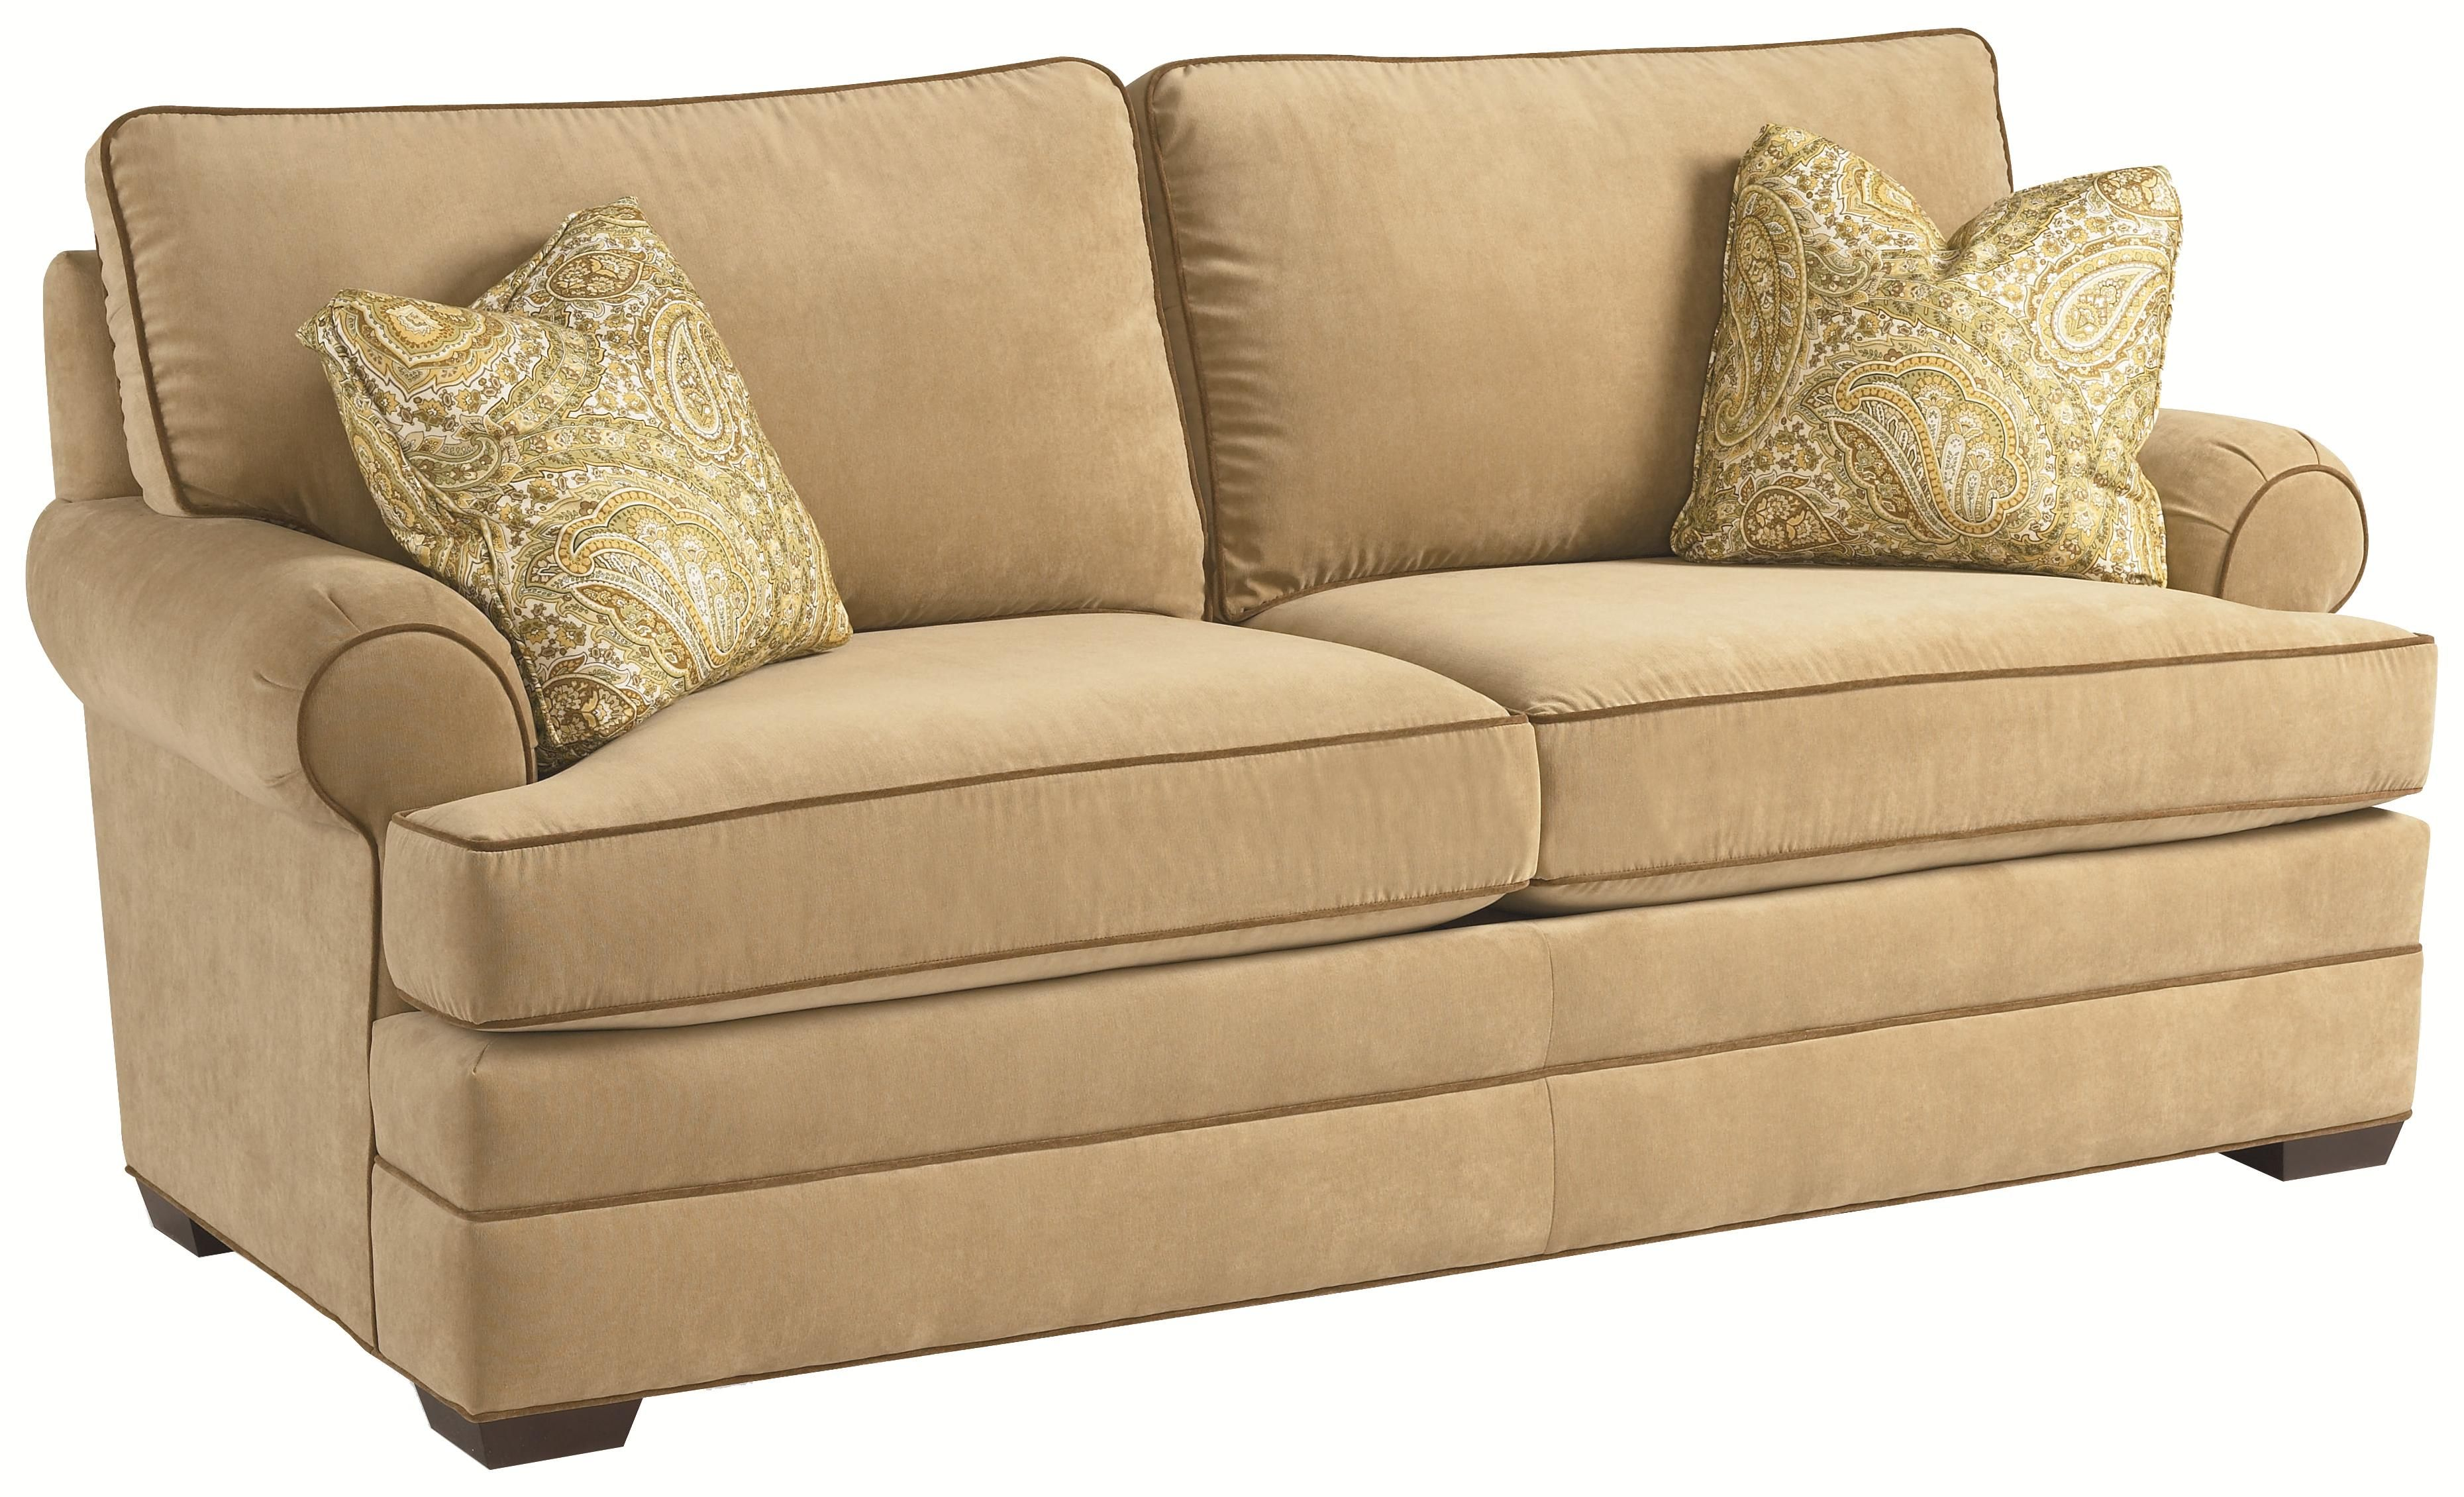 Thomasville Sleeper Sofa Best Country Sleeper Sofa 67 For Your Thomasville Sofas Thesofa